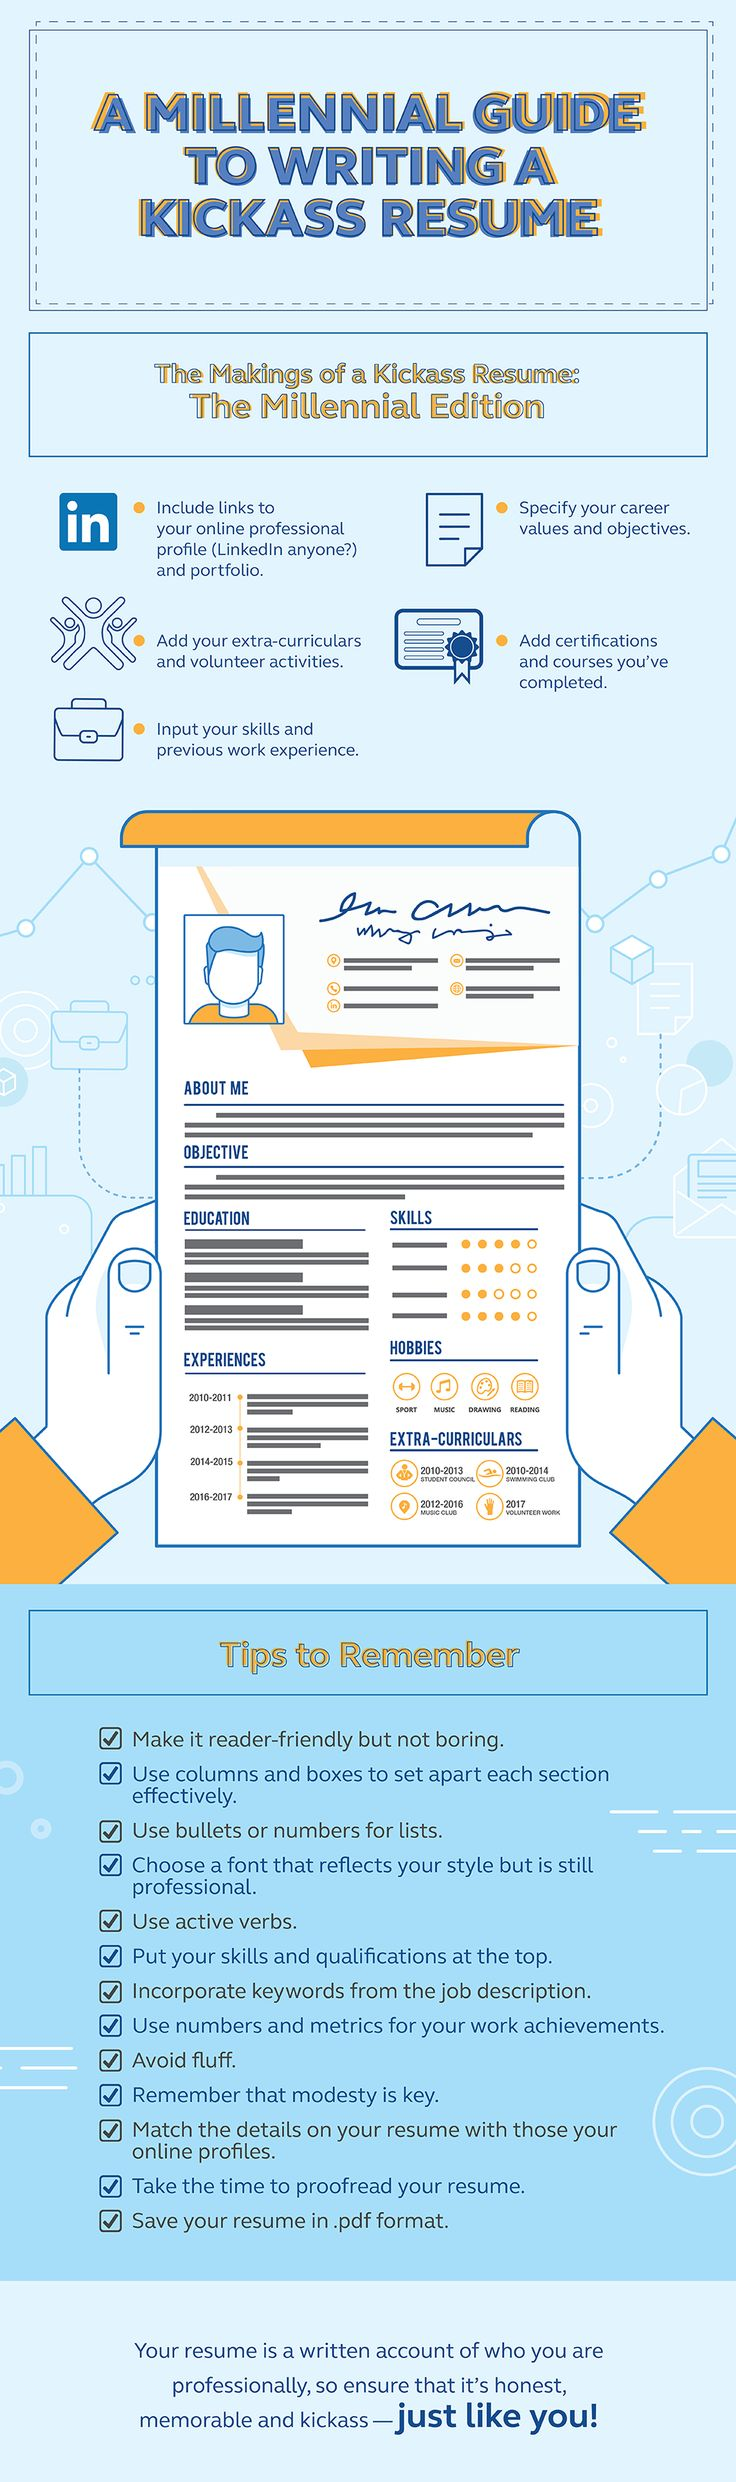 A Millennial Guide To Writing A Kickass Resume | Go! - Globe